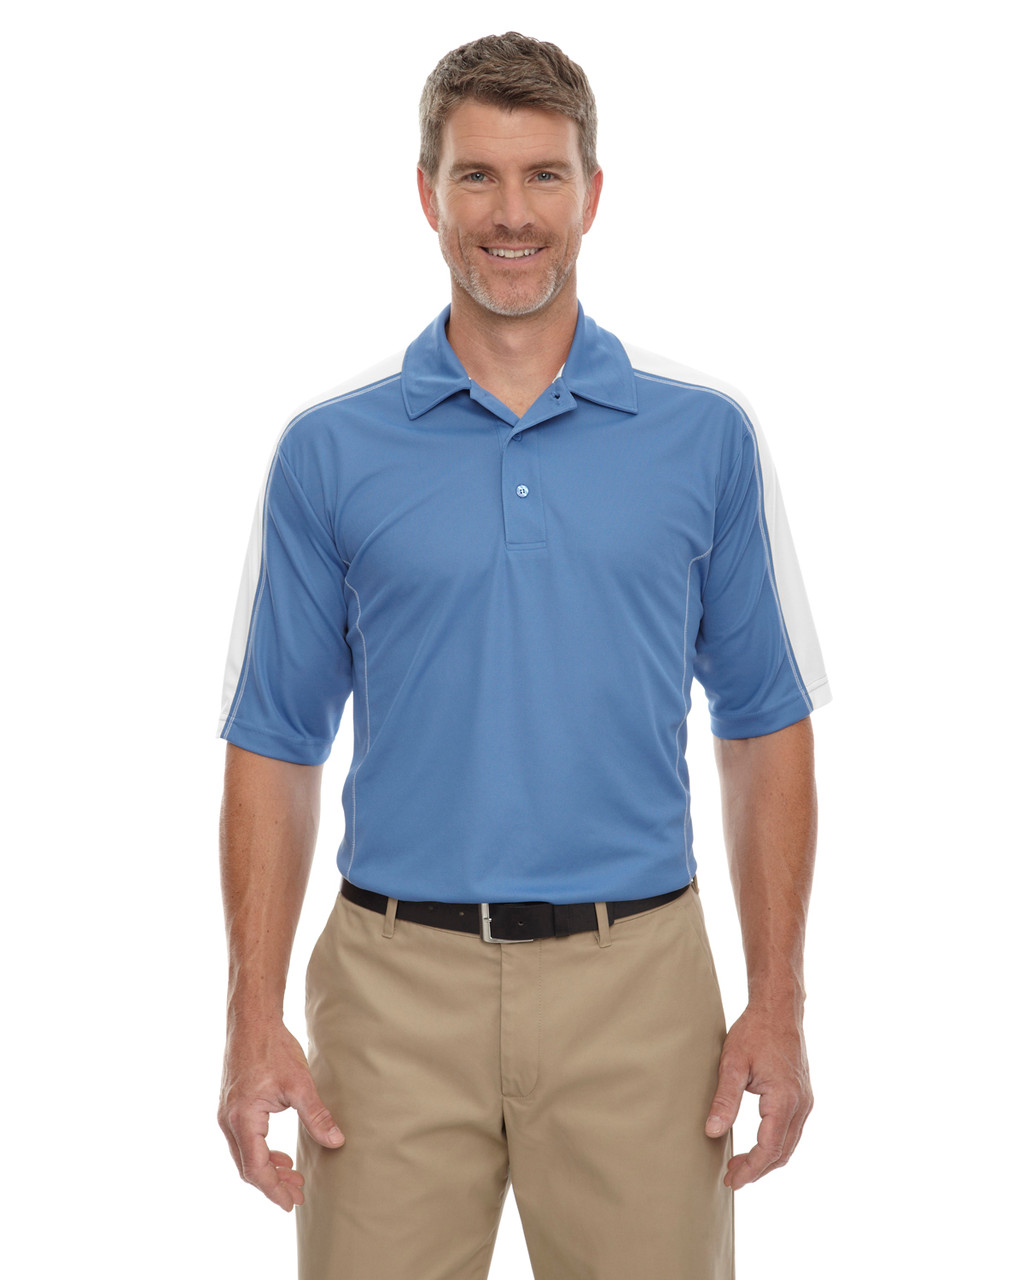 Lake Blue - 85089 Extreme Men's Eperformance Pique Color-Block Polo Shirt | BlankClothing.ca